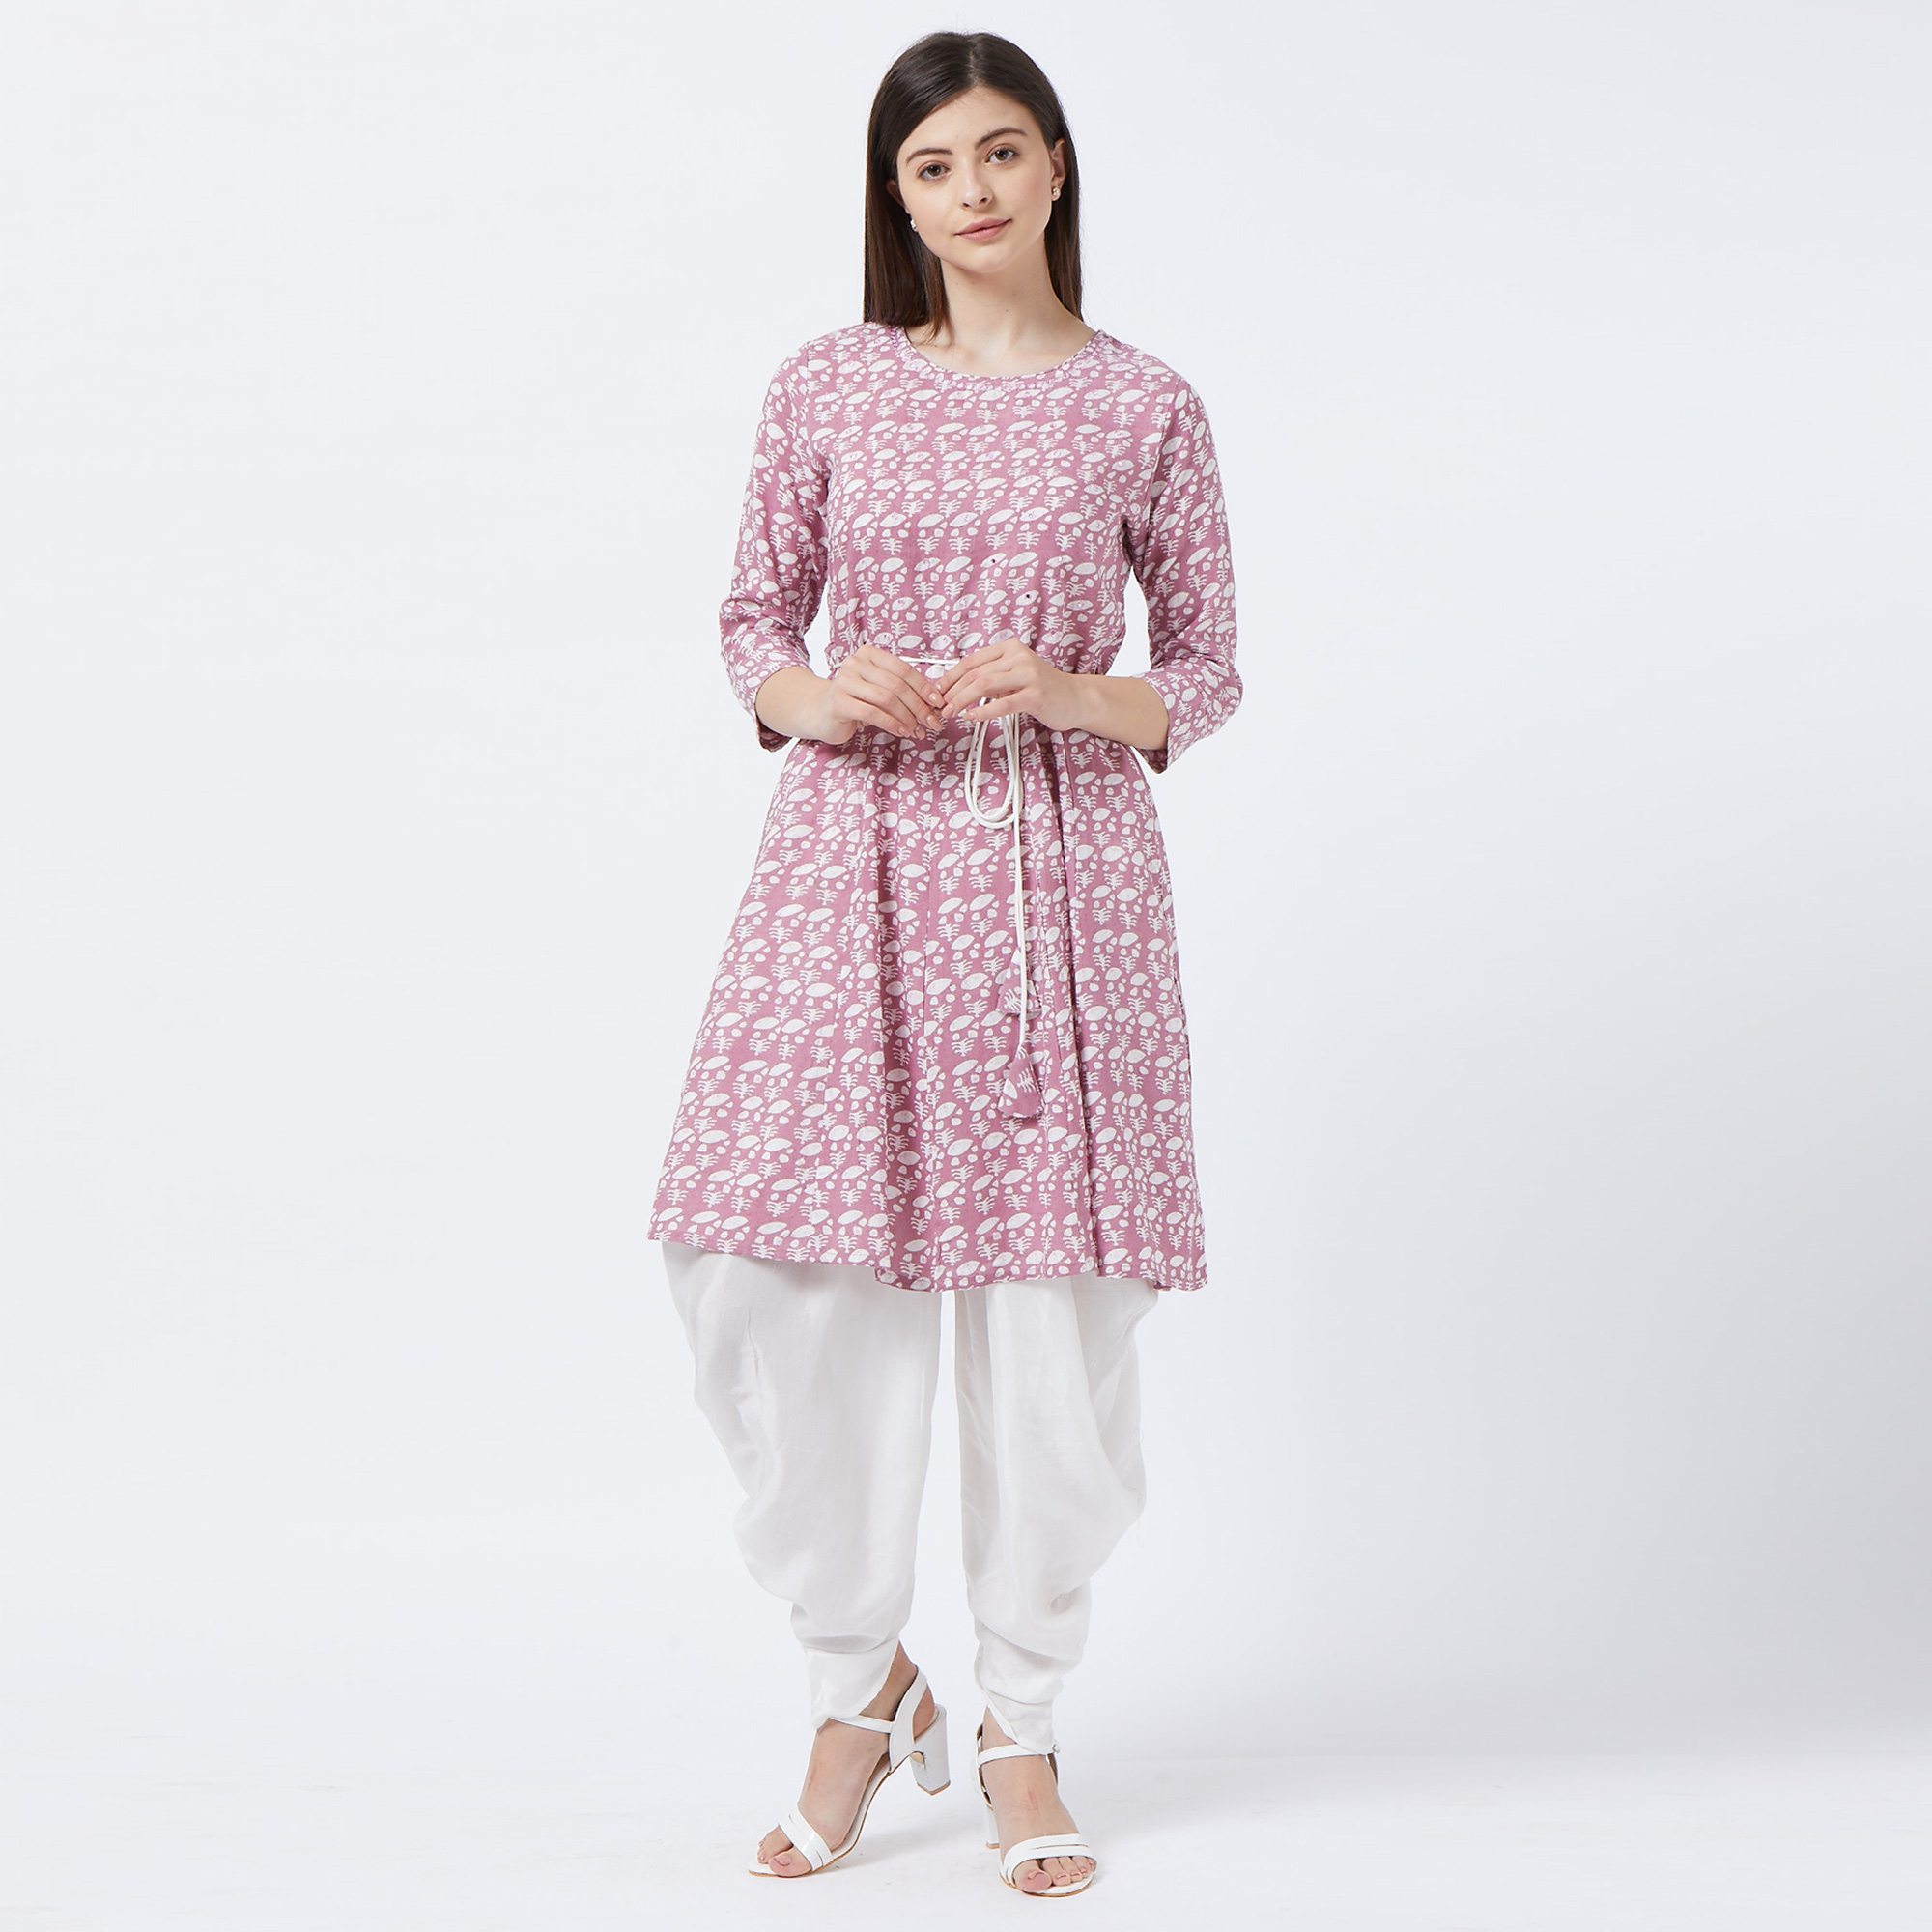 Captivating Mauve Colored Partywear Printed Cotton Kurti And Dhoti Set